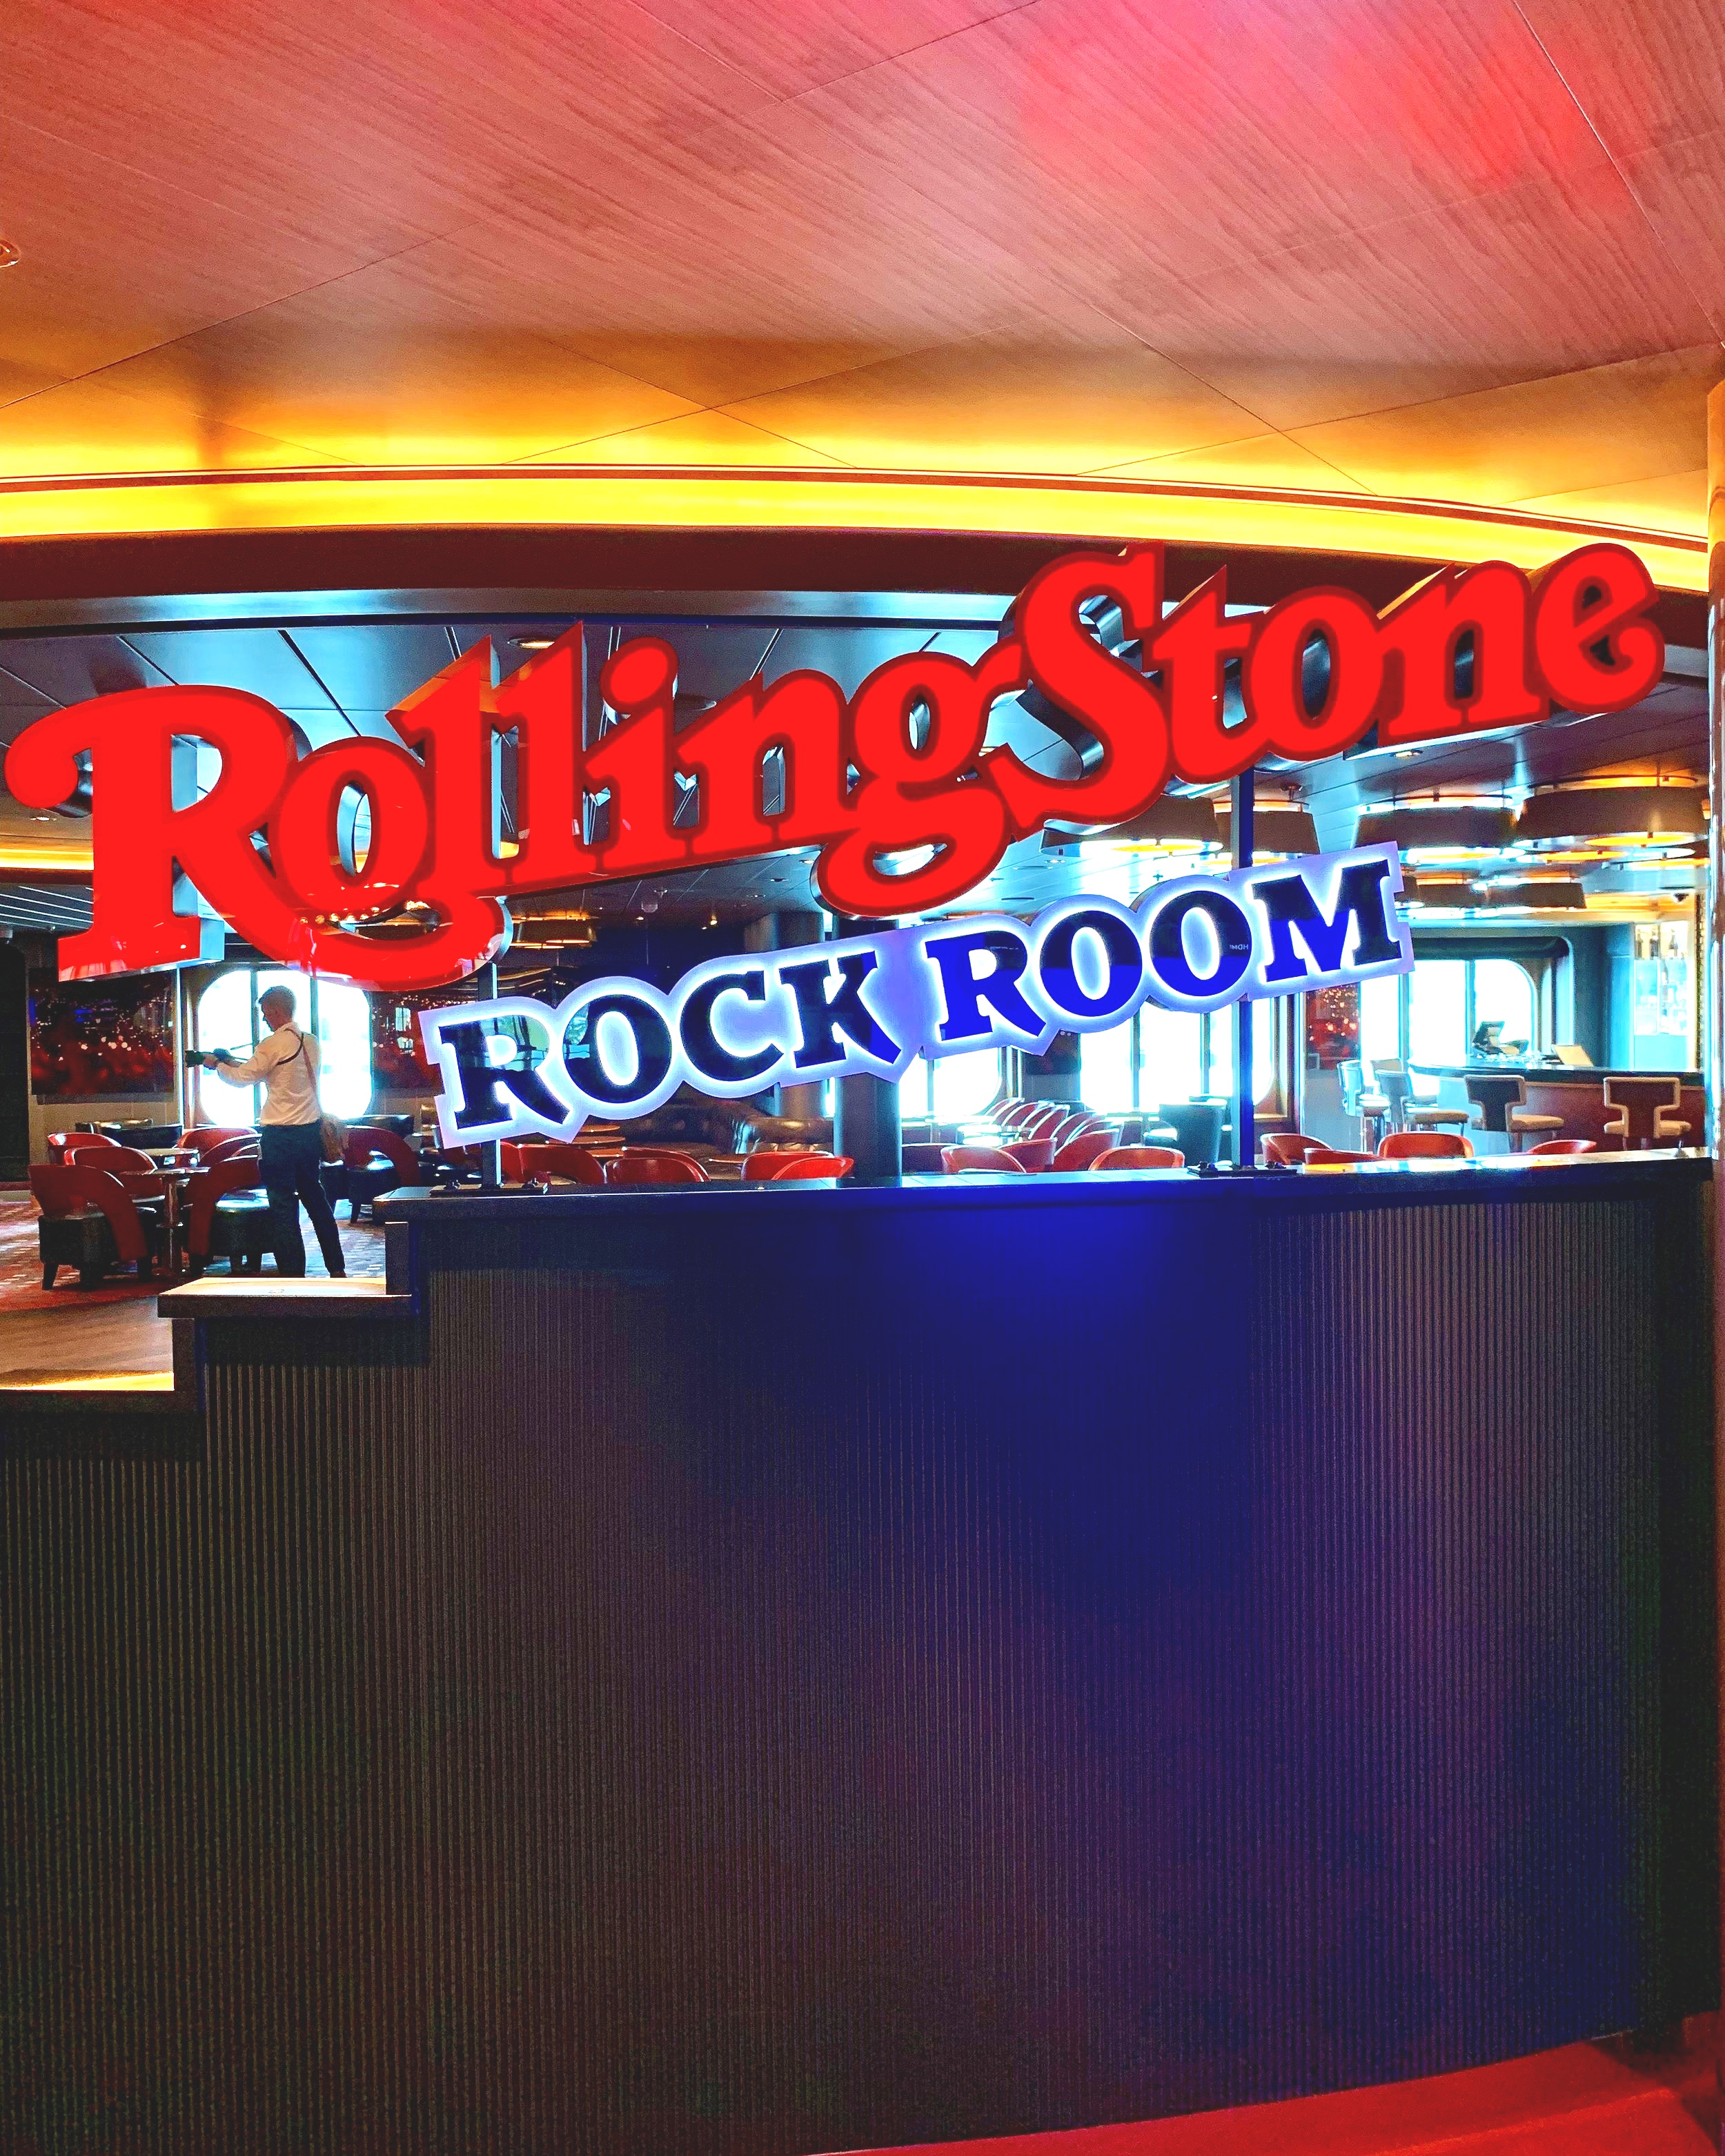 The Rolling Stone rock room - we can't wait to spend an evening here.